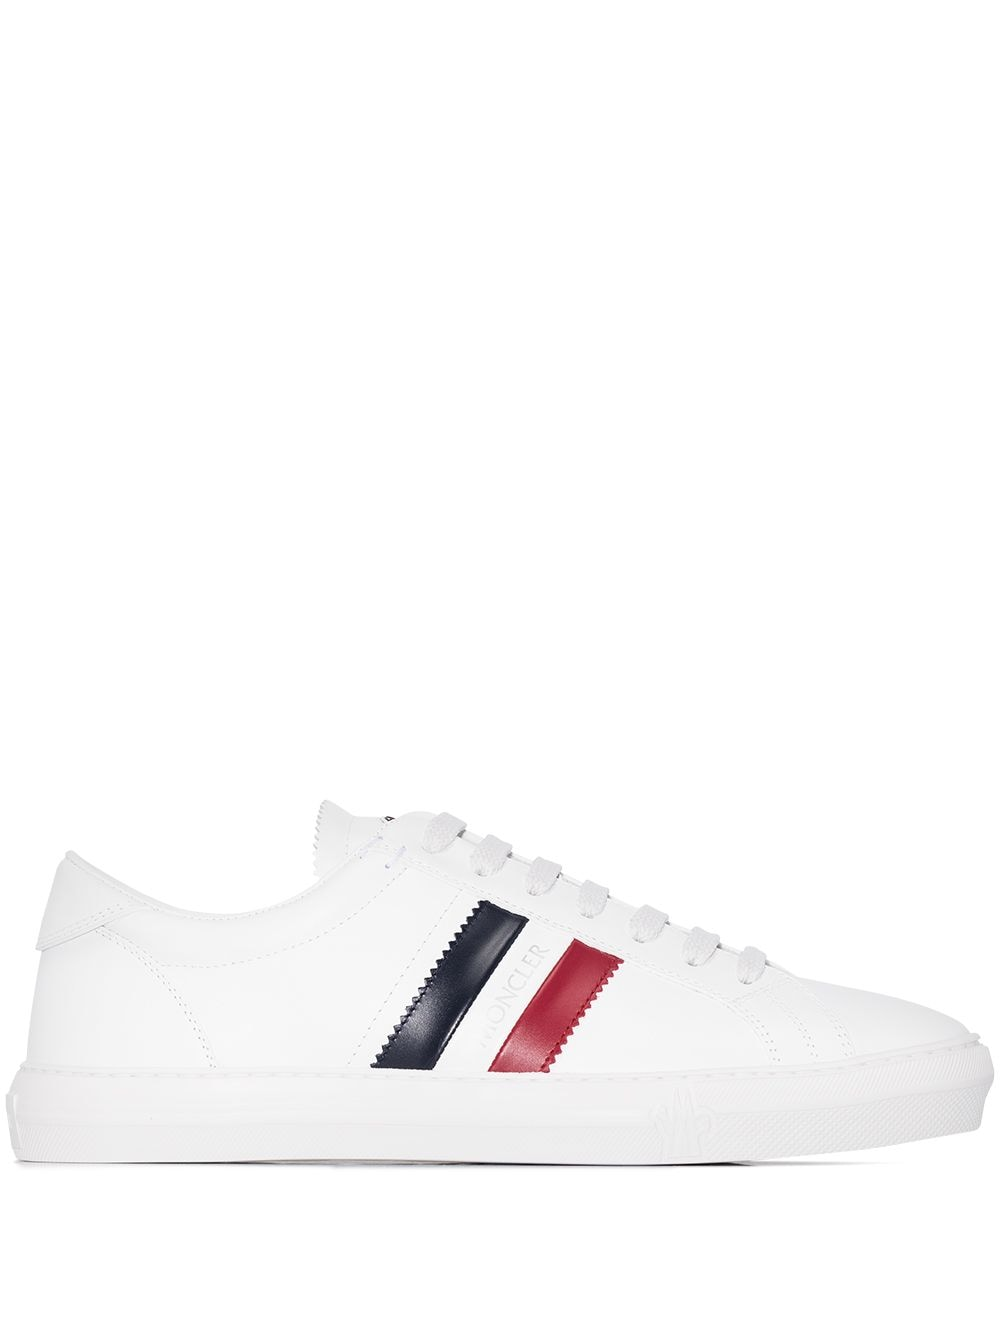 MONCLER New Monaco Stripe-Detail Sneakers White - Maison De Fashion